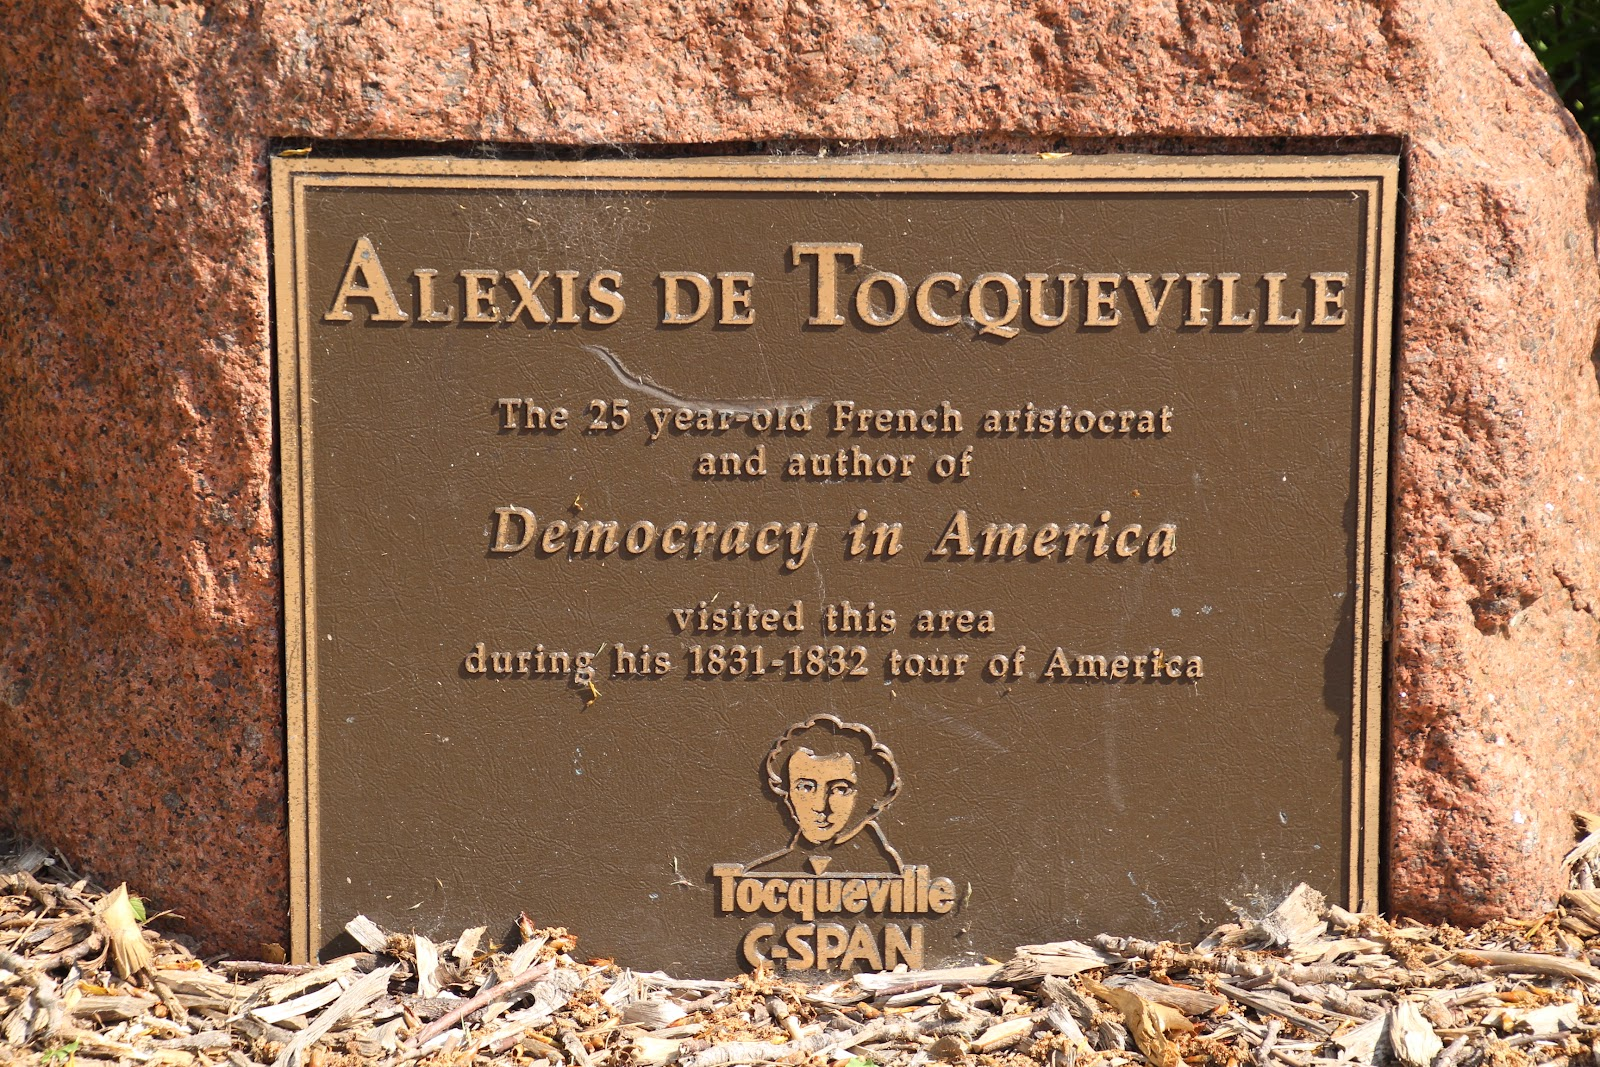 essays by alexis de tocqueville Essay on alexis de tocqueville born into a french aristocratic family in 1805, alexis de tocqueville was a french political theorist, sociologist, and cultural and historical commentator whose contributions are equally claimed by the disciplines of sociology, political science, american studies, and american history.